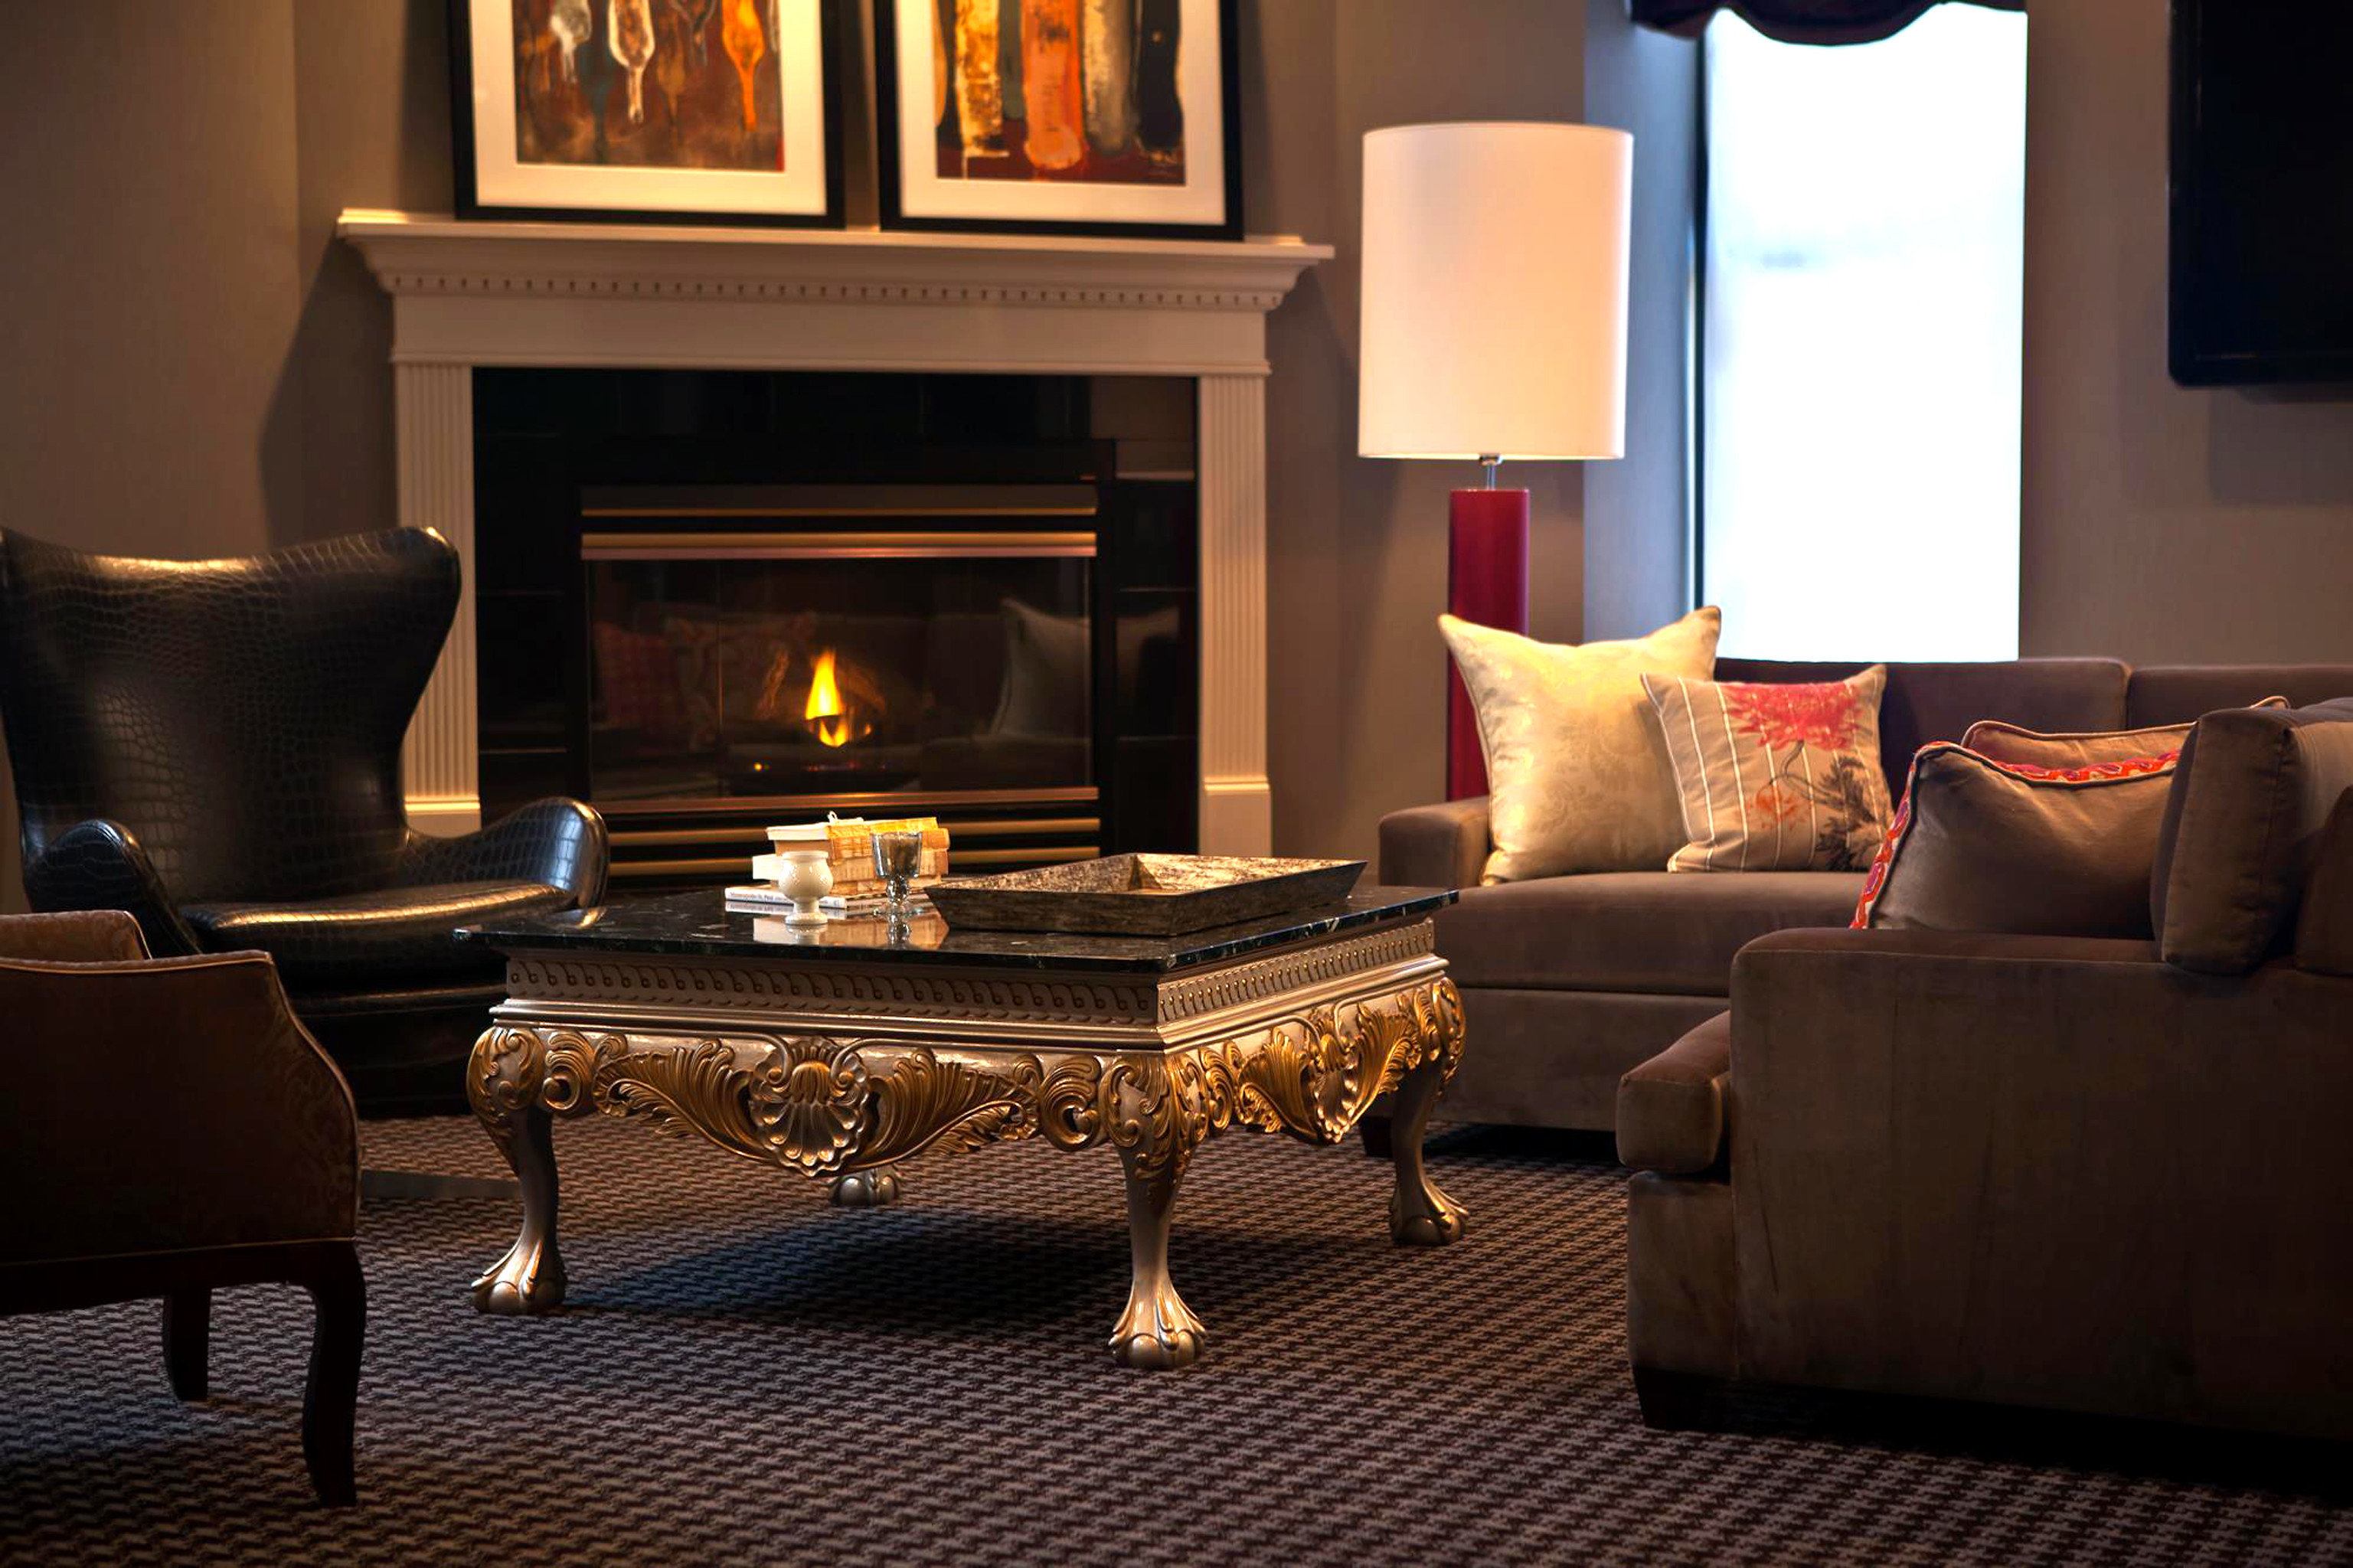 City Fireplace Modern sofa living room property hearth home hardwood Suite lighting cottage wood flooring leather